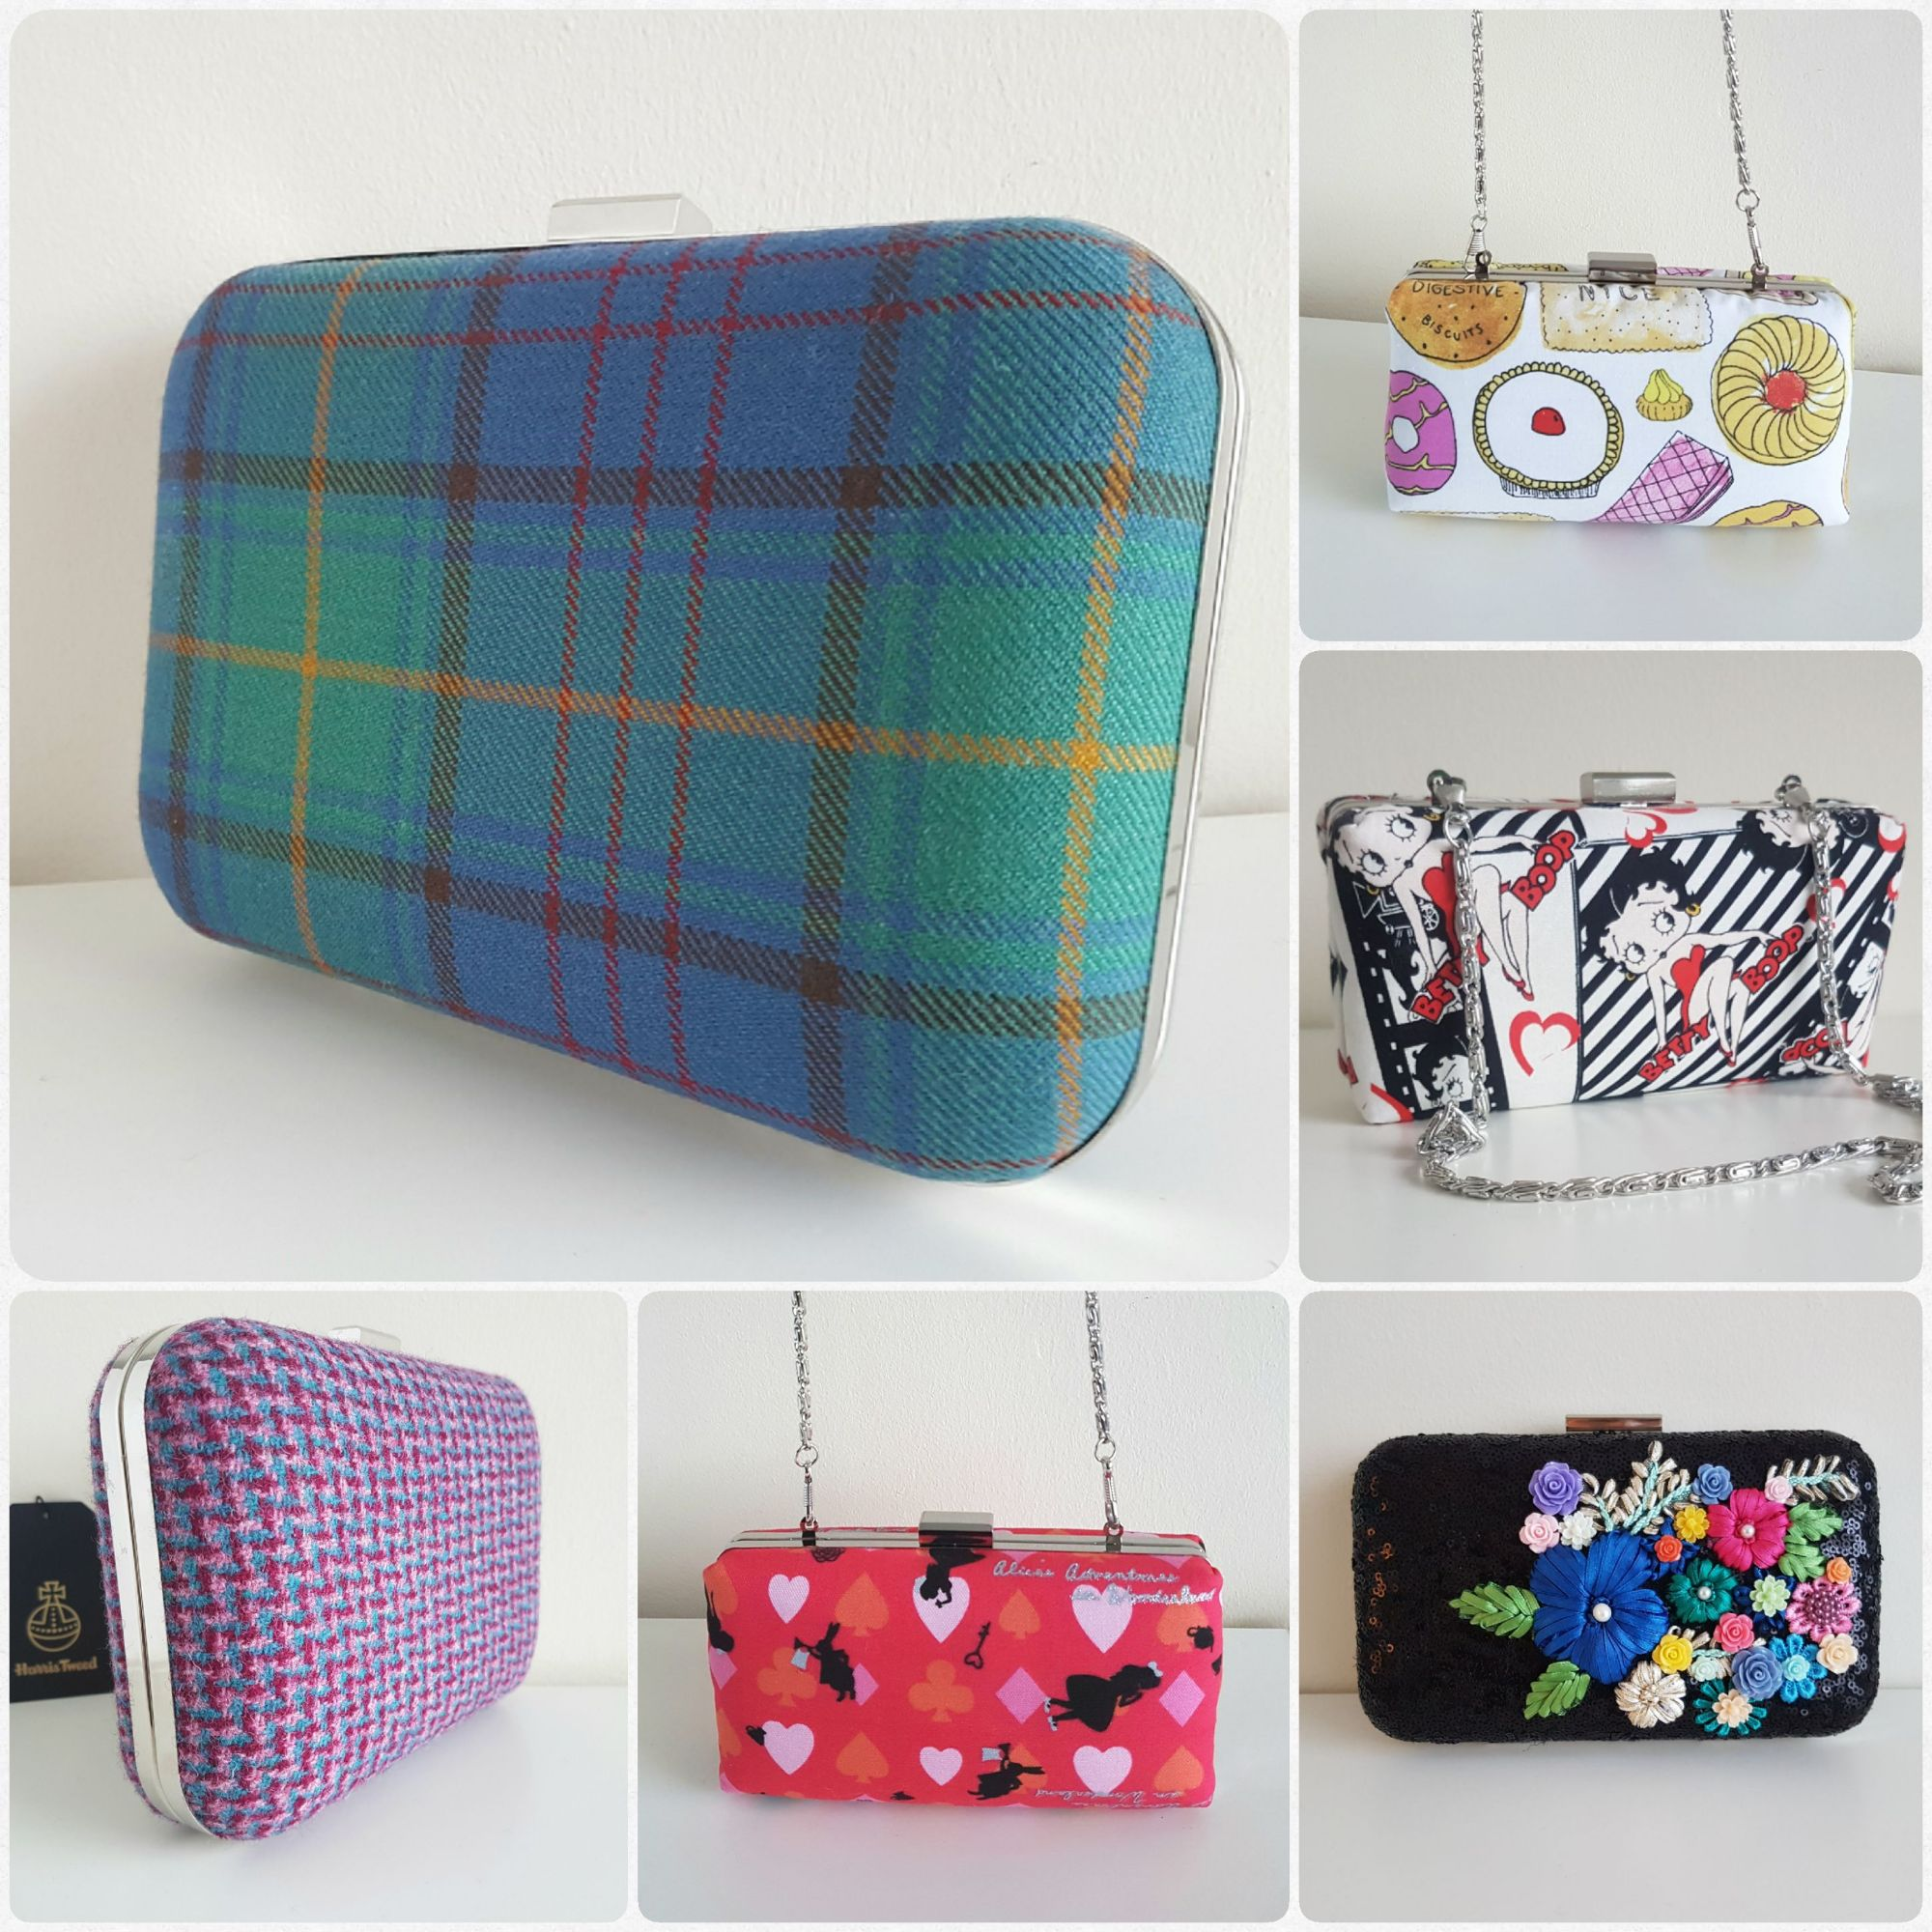 Custom tartan clutch bags, Harris Tweed bags, Betty Boop clutch, unique designed bags